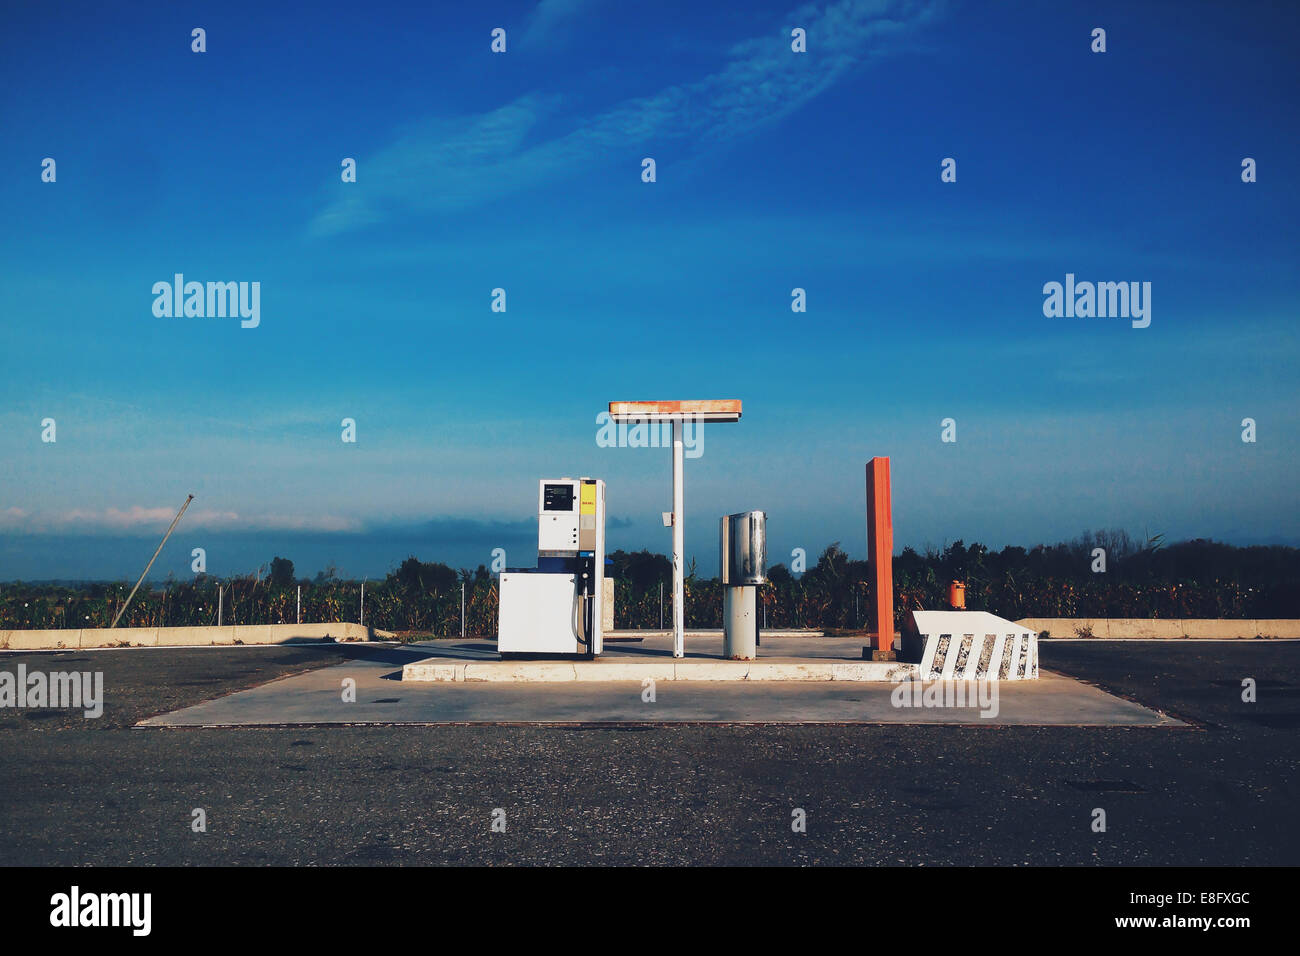 Italy, Isolated gas station - Stock Image